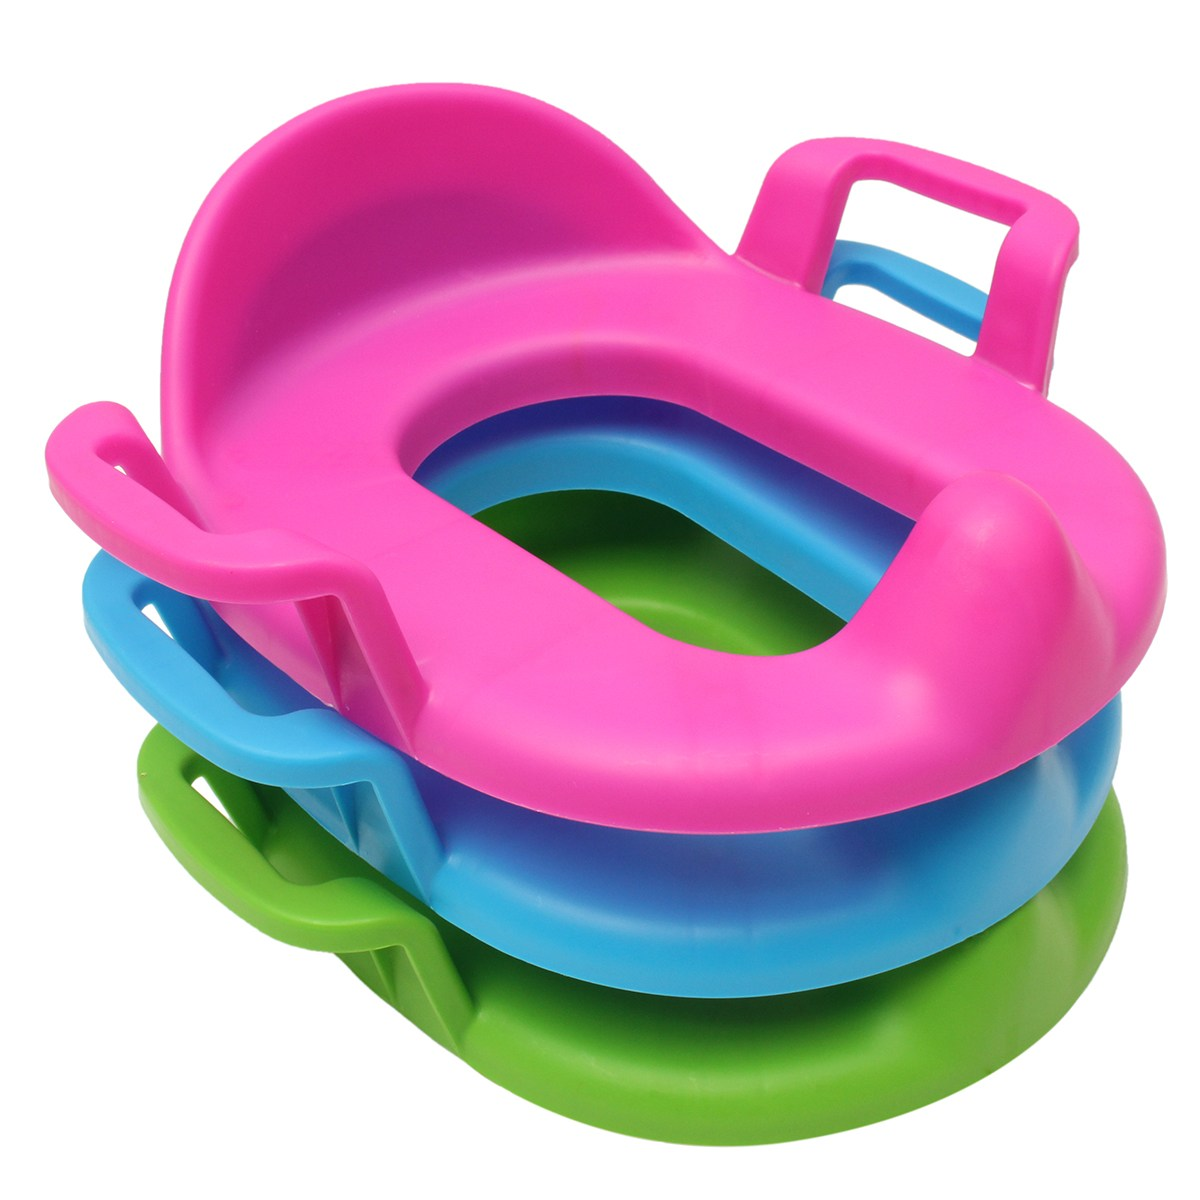 PP Soft size adjustable Easy Clean Baby children Toddler Training Urinal Baby Care Potties seat Pedestal Pad ring